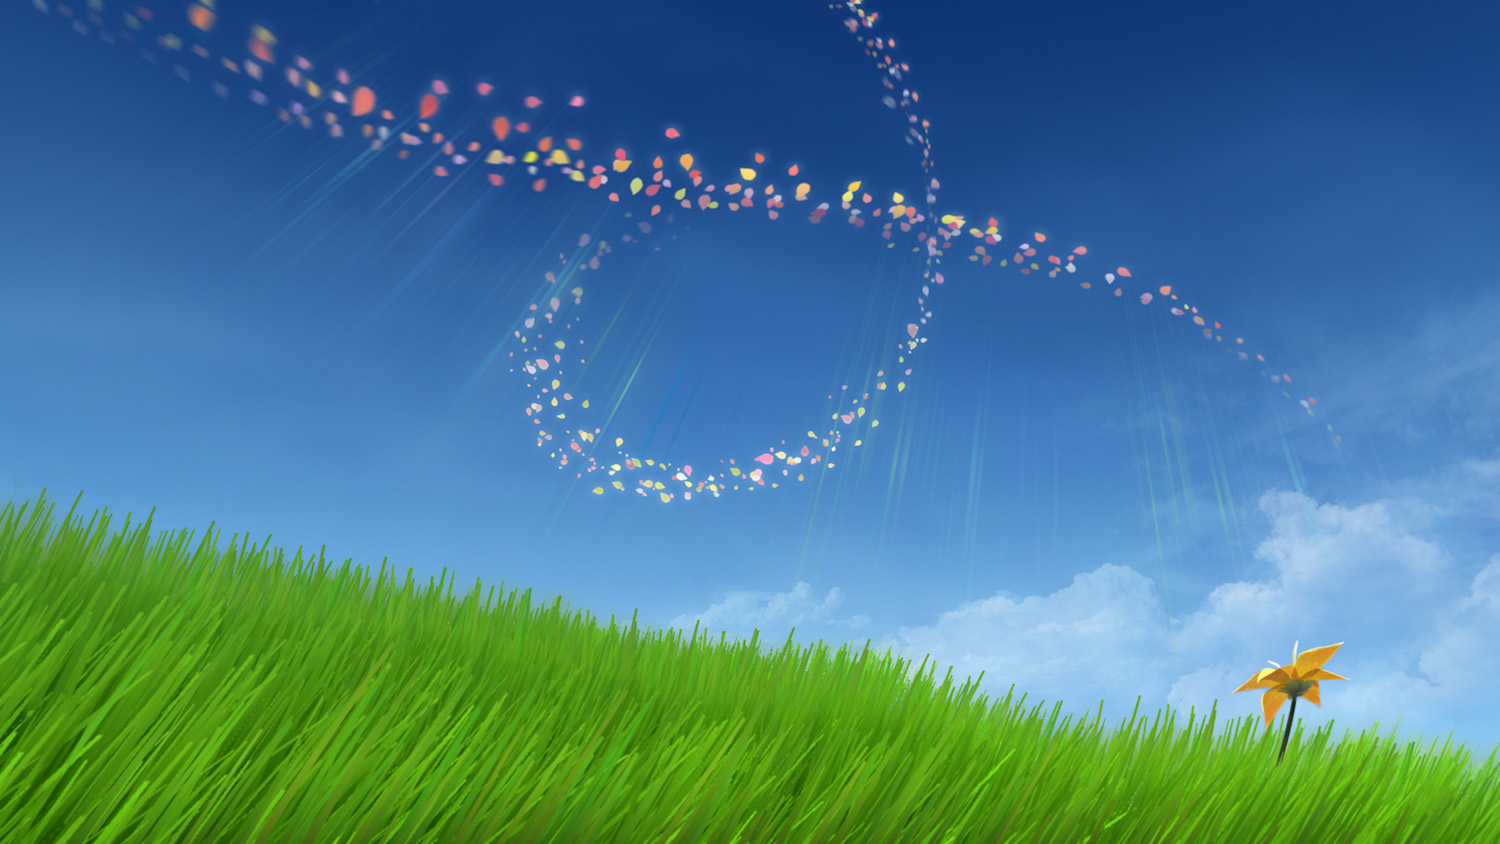 2012_Flower_A4345_thatgamecompany_Still_004_ltr